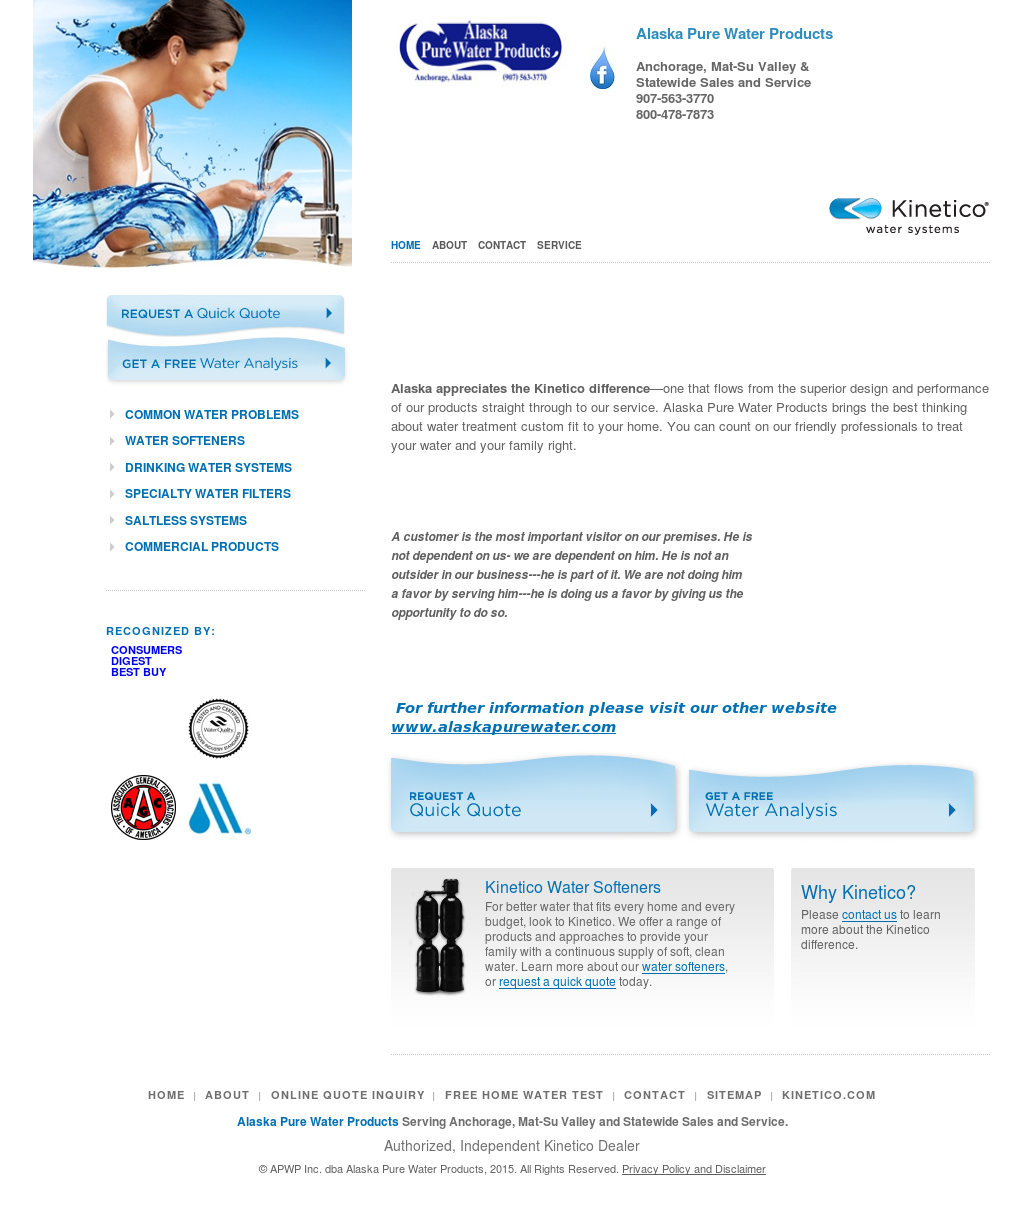 Apwp Inc Dba Alaska Pure Water Products Compeors Revenue And Employees Owler Company Profile